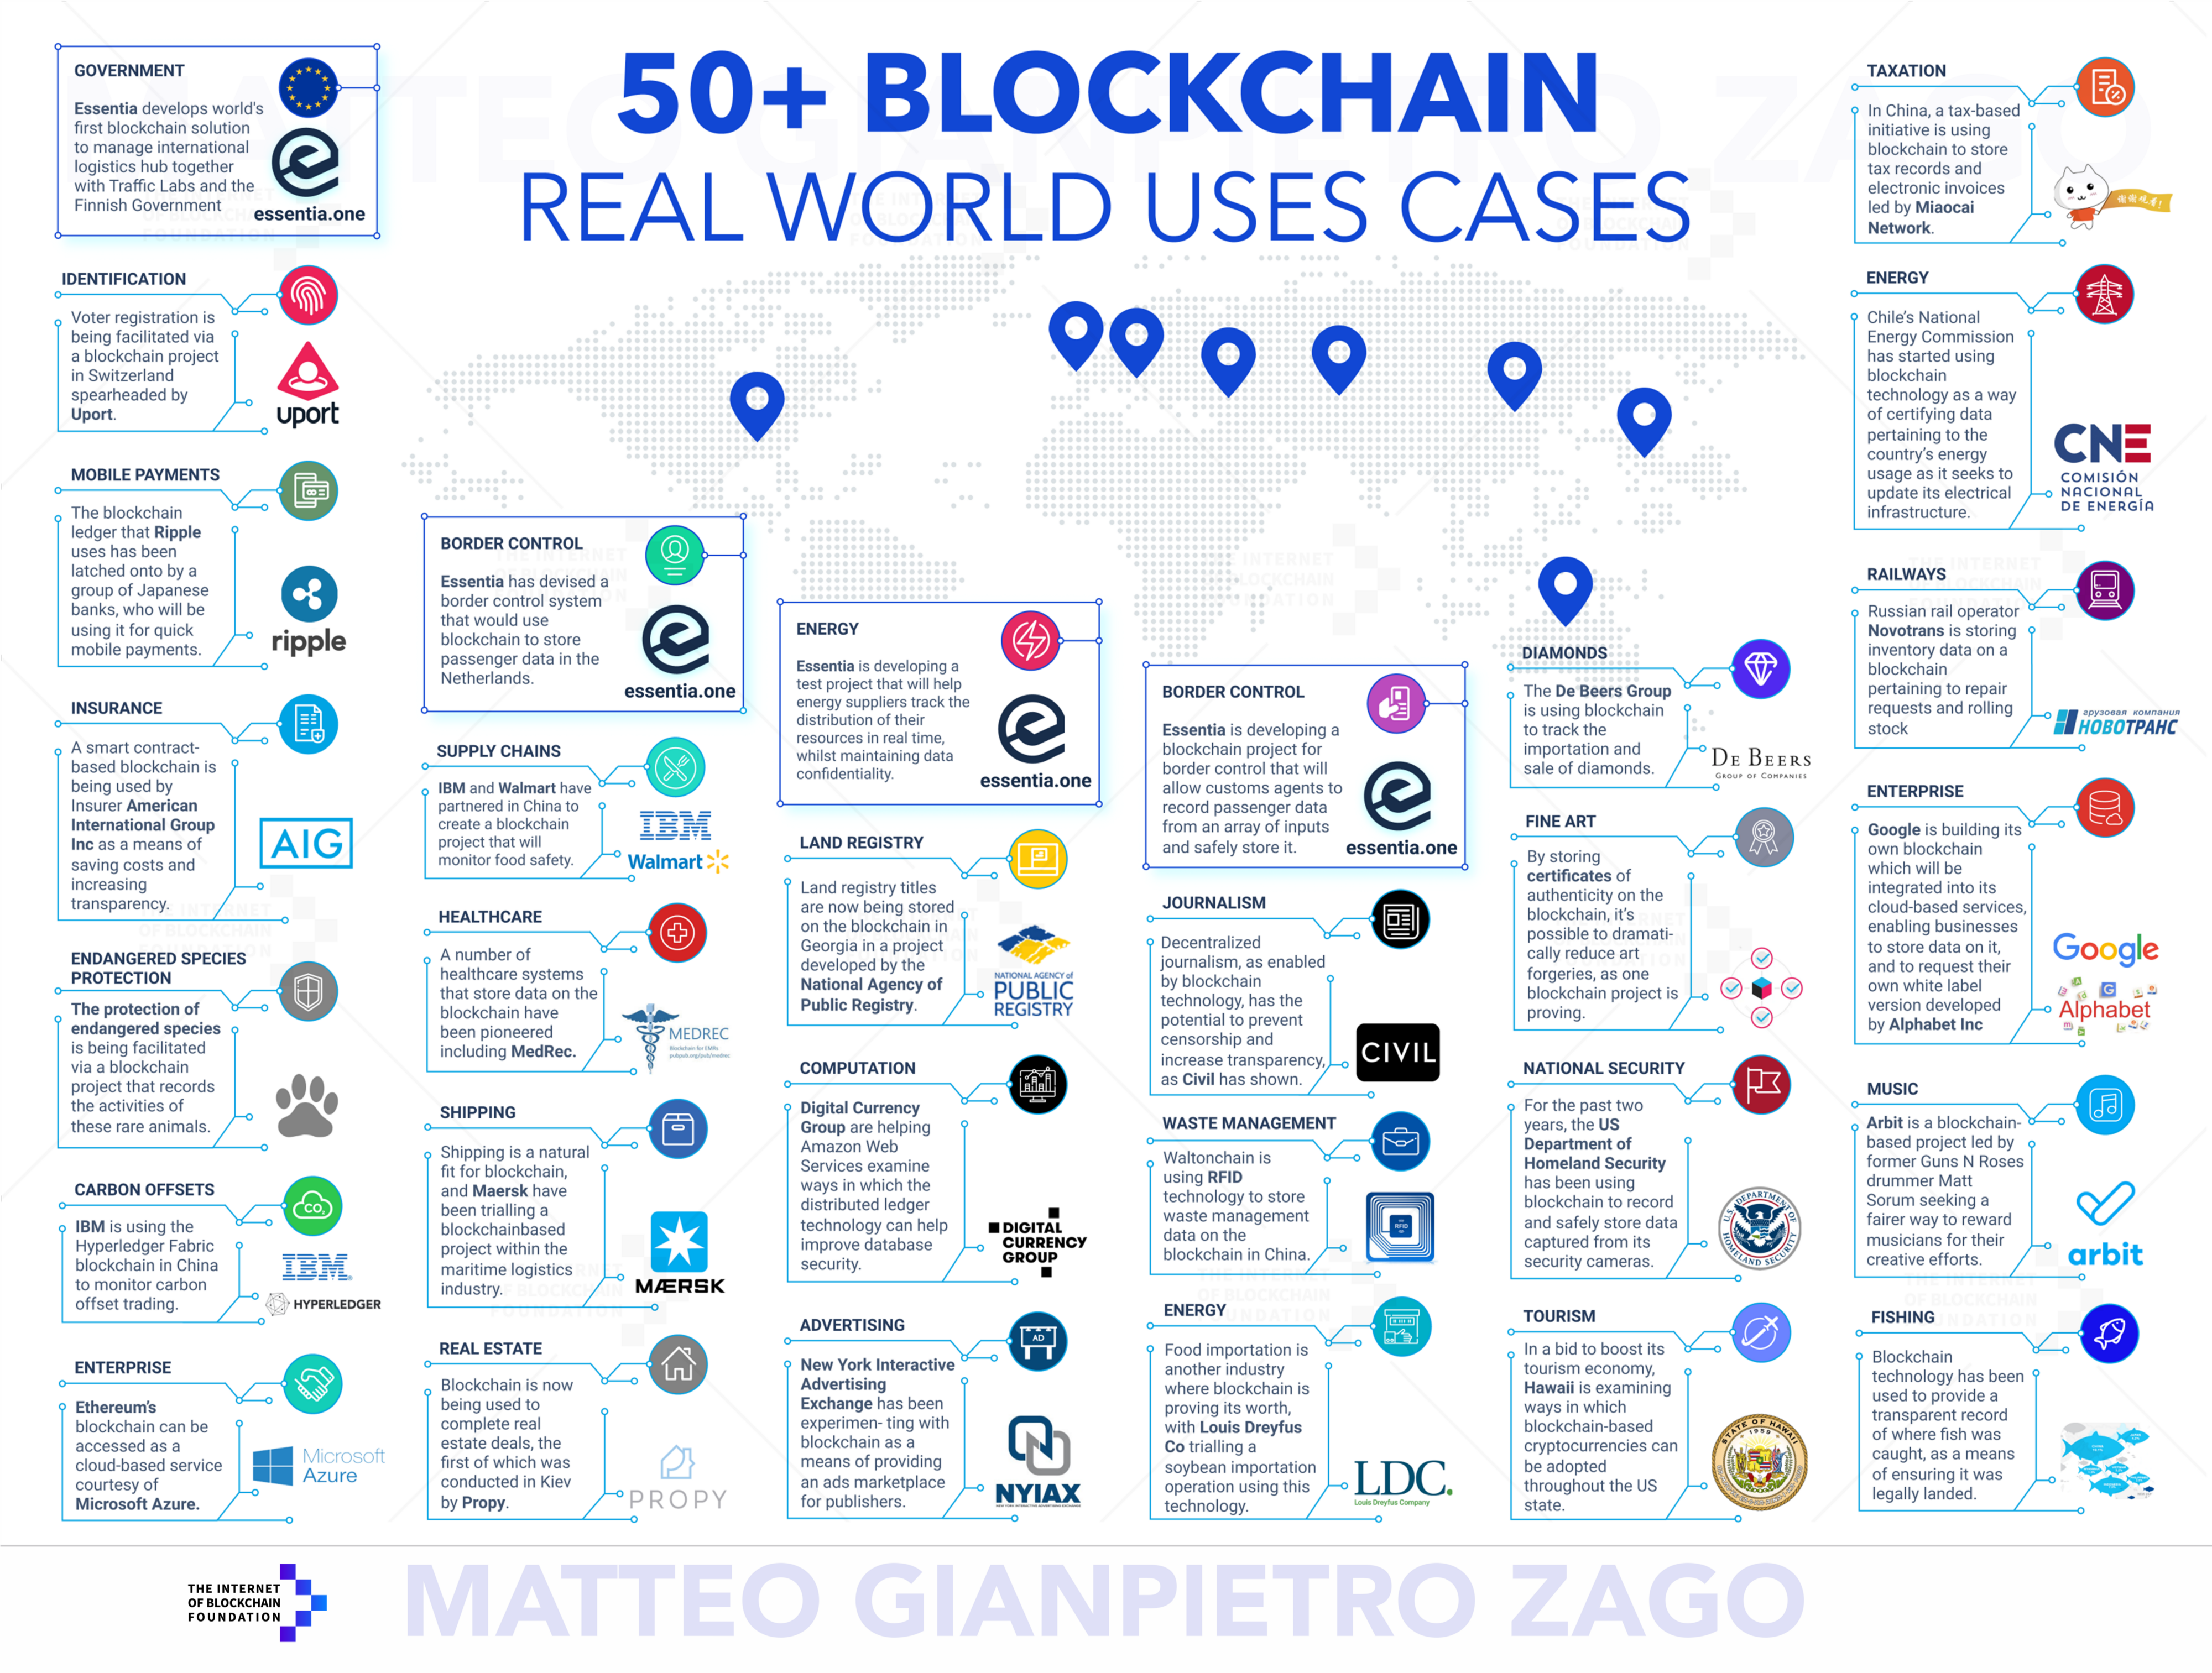 50+ Examples of How Blockchains are Taking Over the World